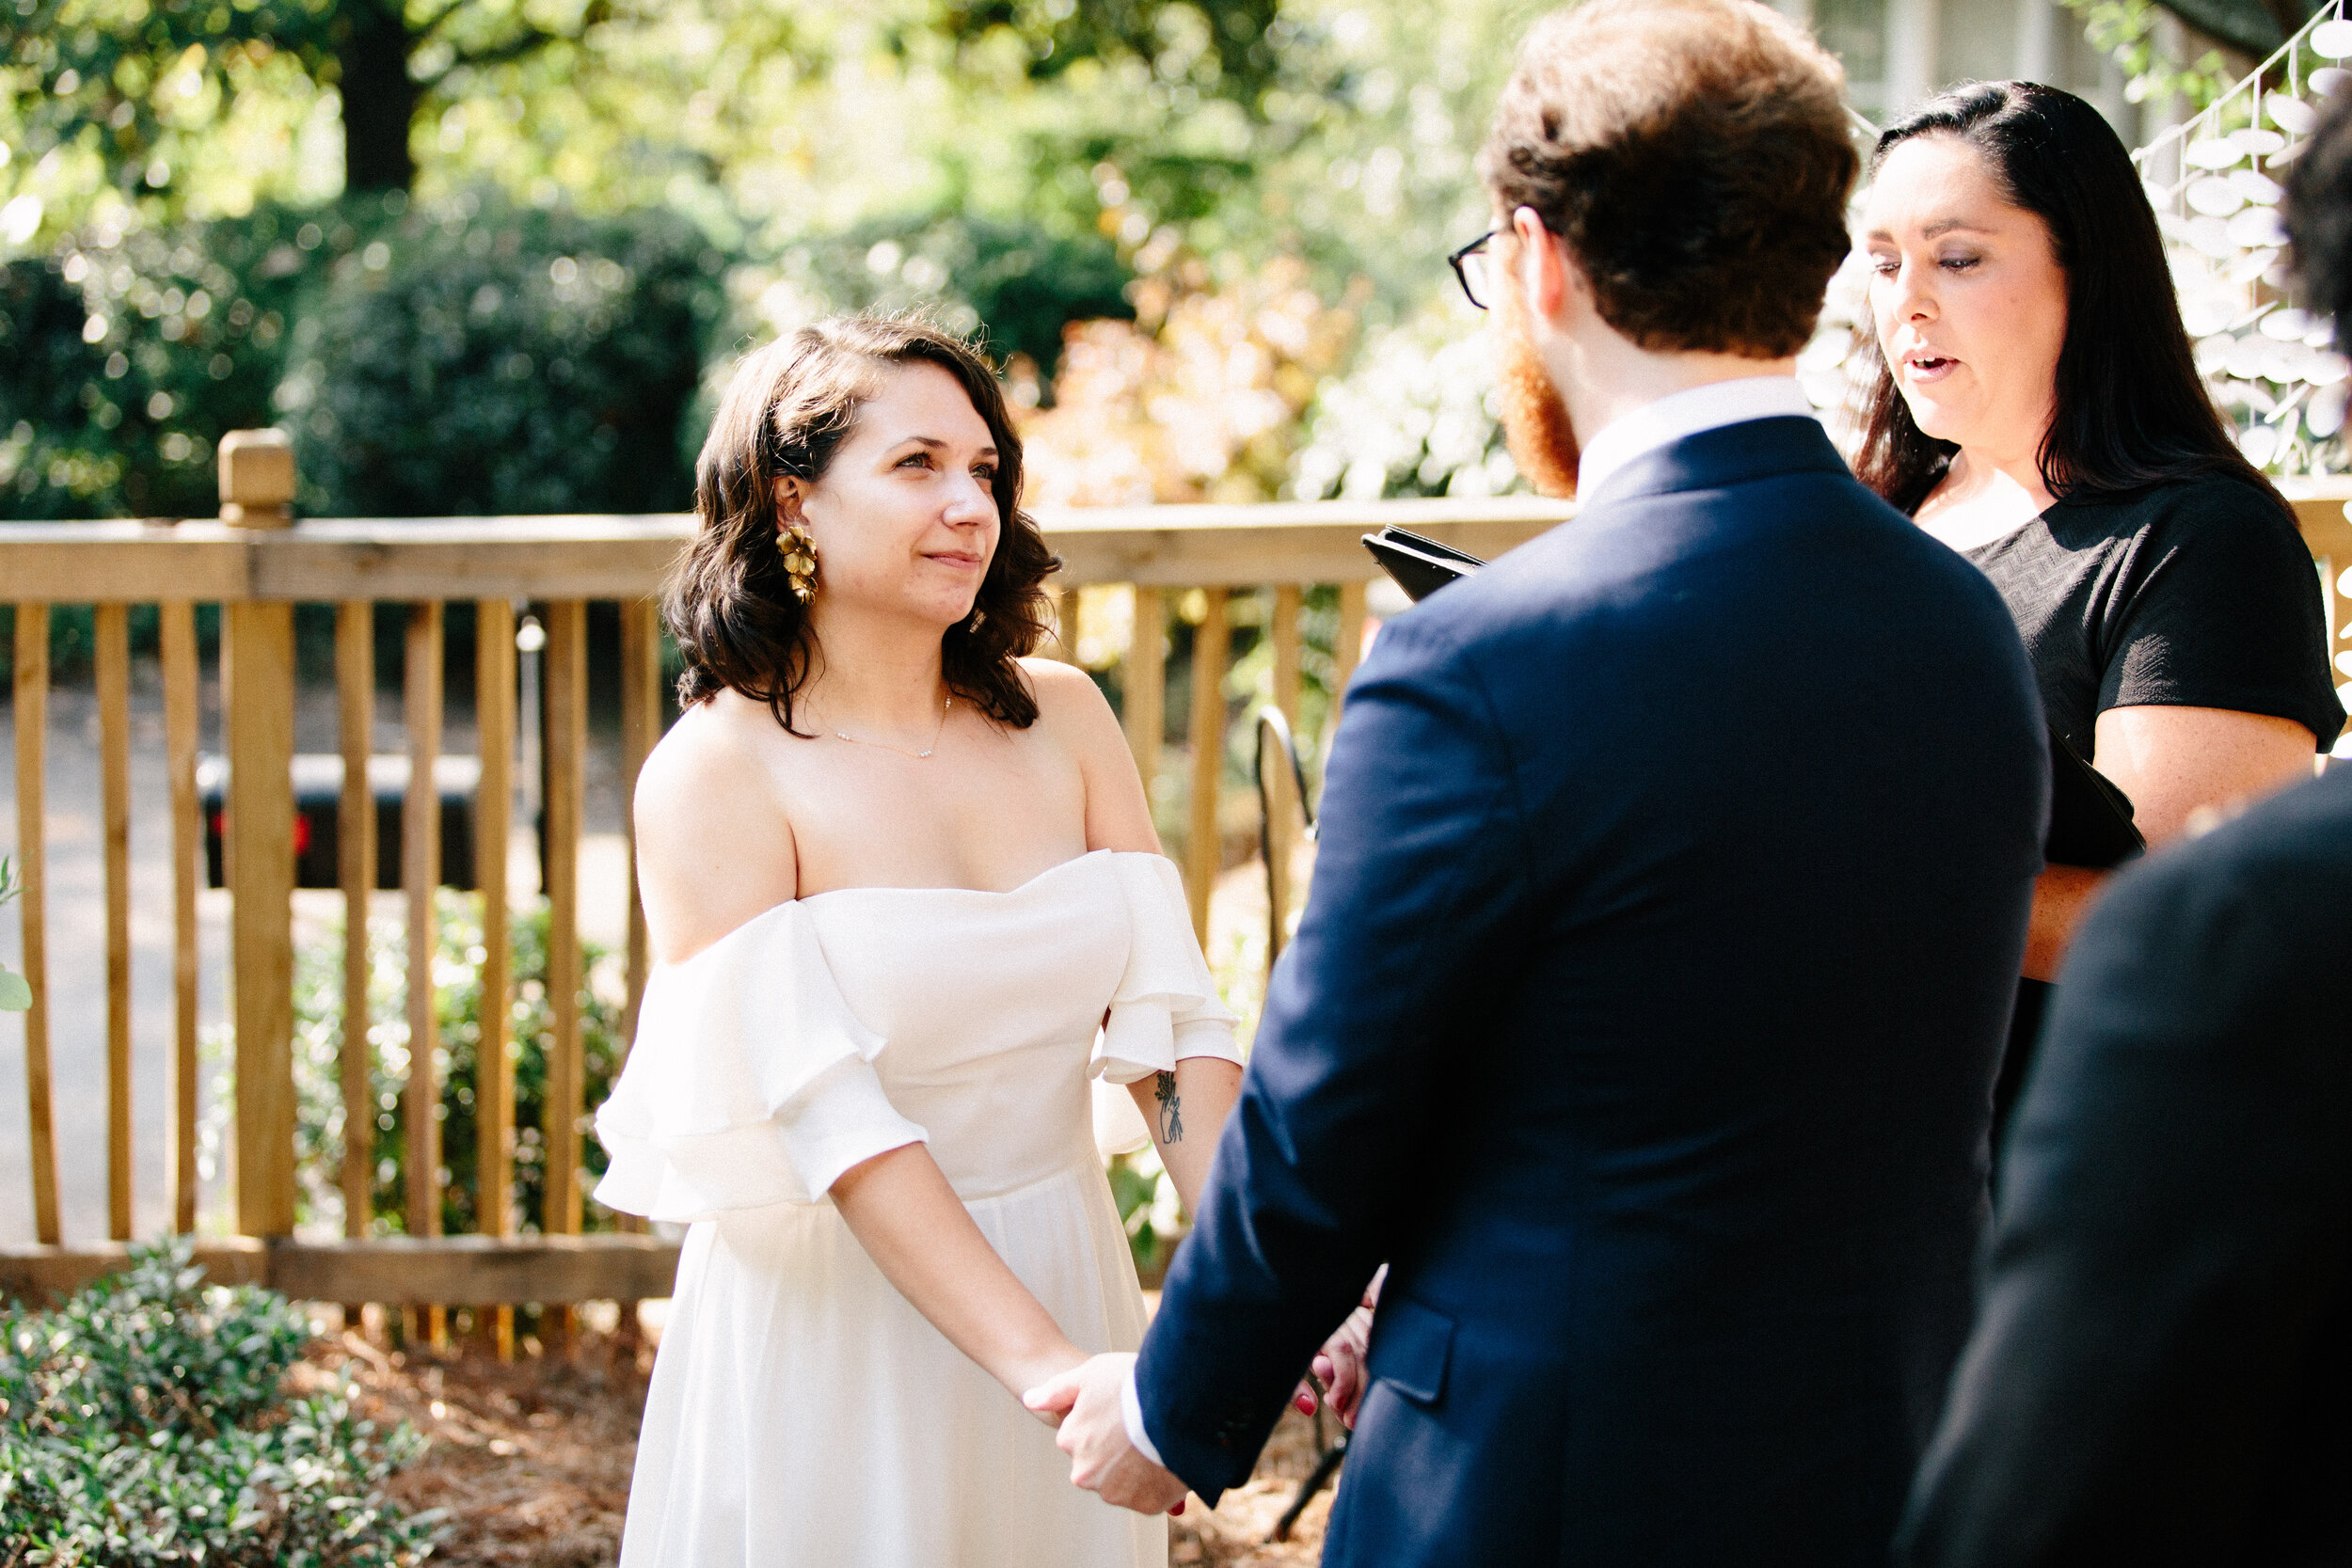 backyard_sun_in_my_belly_wedding_diy_at_home_atlanta_inman_park_arty_photographer_1394.jpg